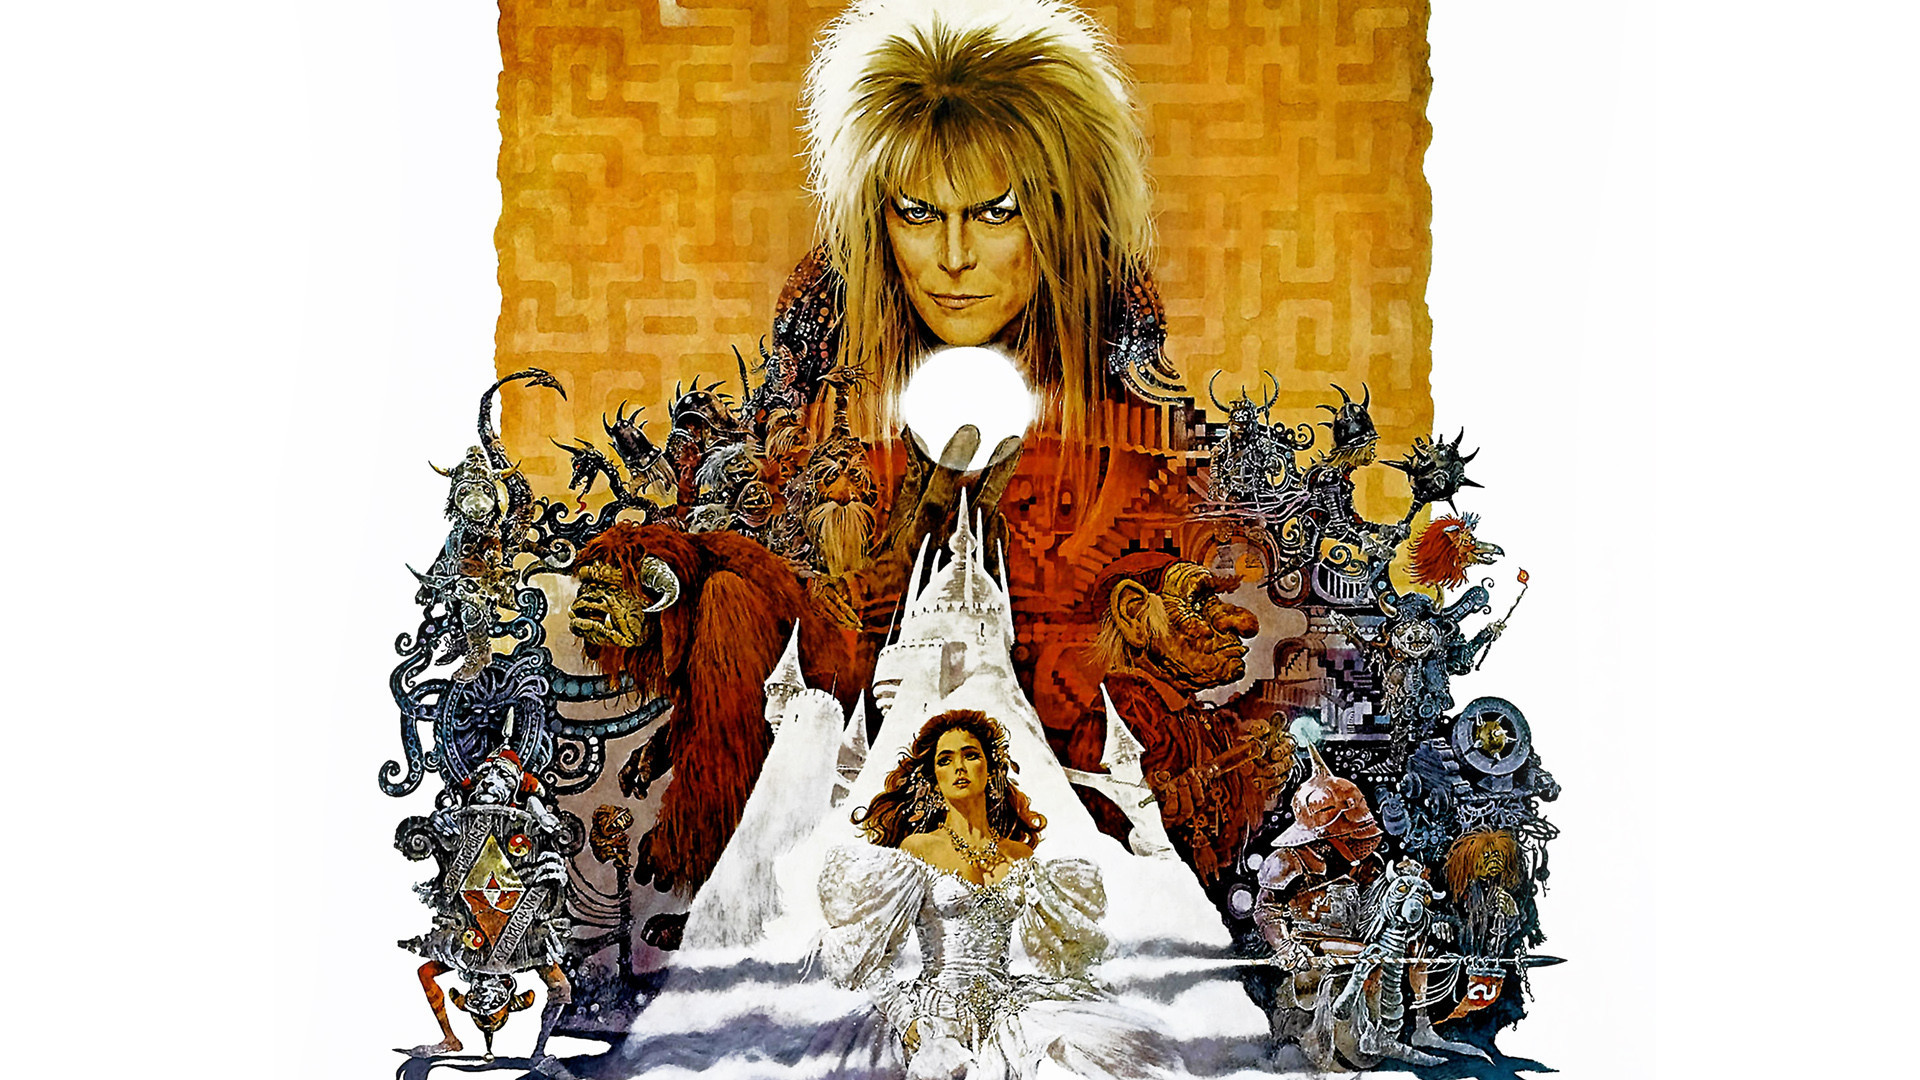 Labyrinth Computer Wallpapers, Desktop Backgrounds ... Labyrinth Movie Wallpaper